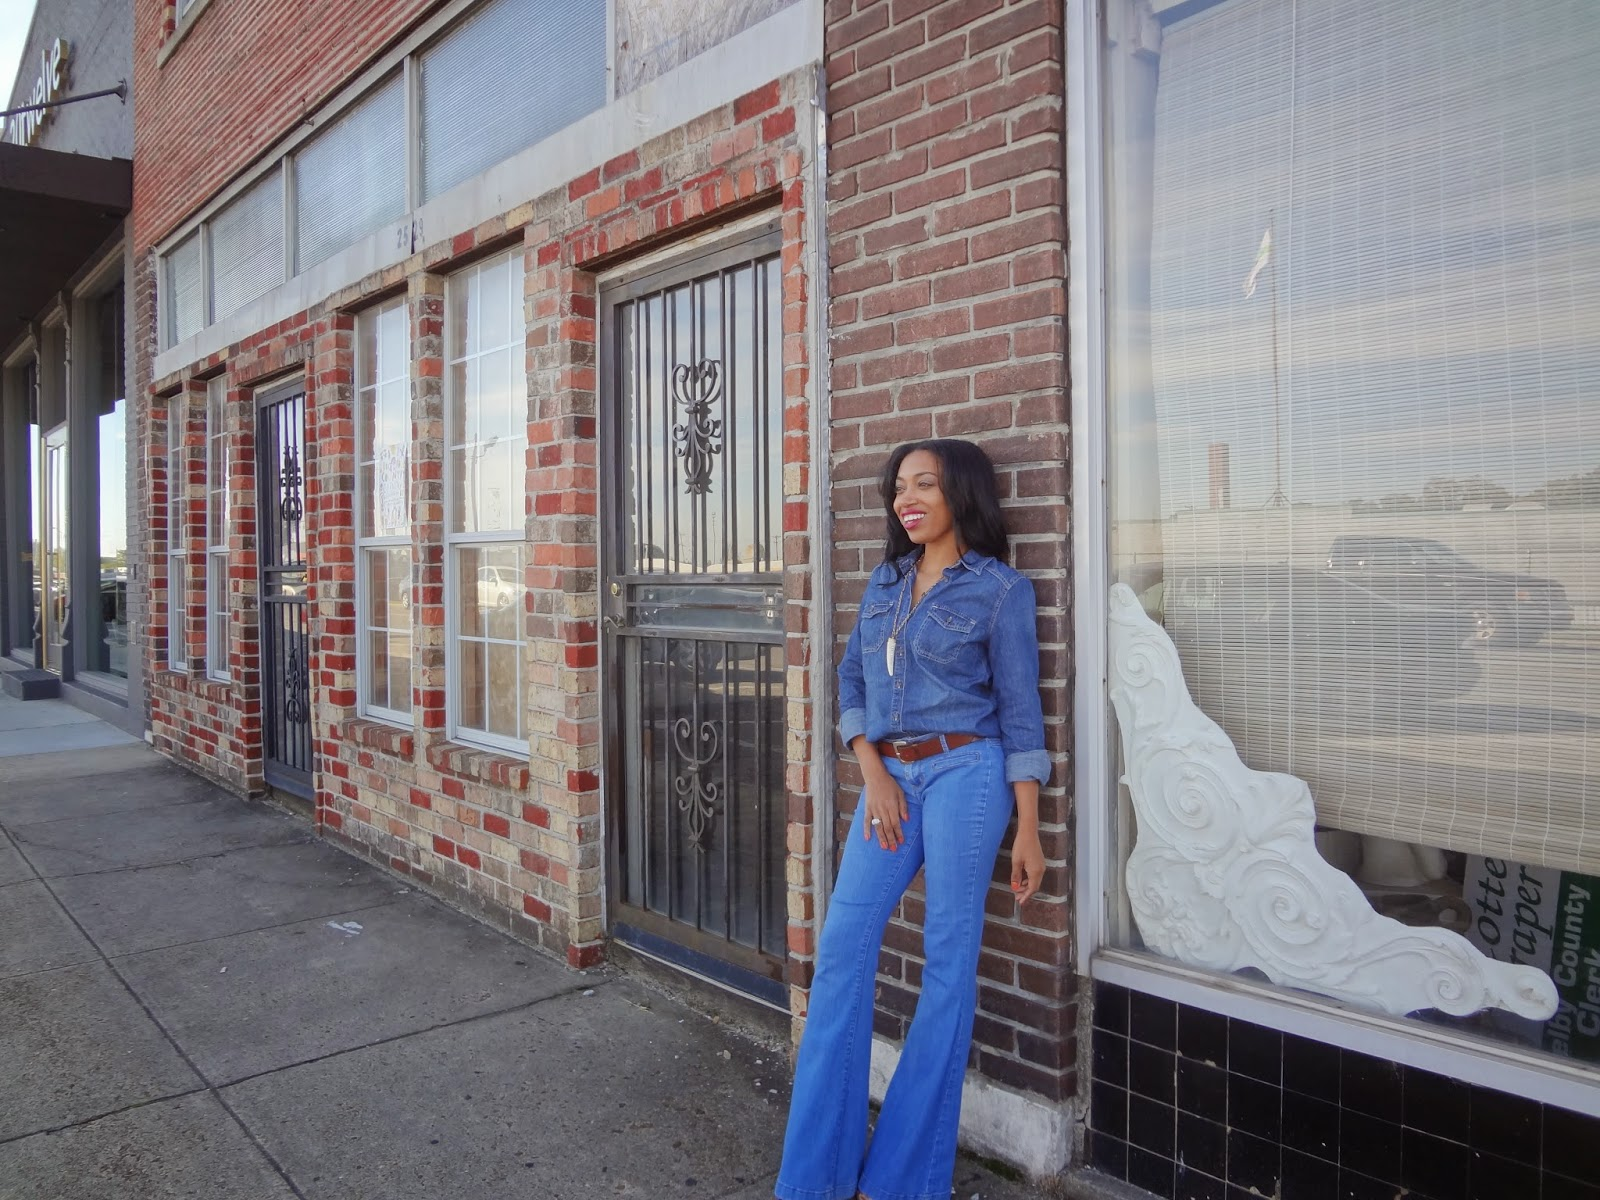 Andrea Fenise Memphis Fashion Blogger shares how to create a personal style tearbook